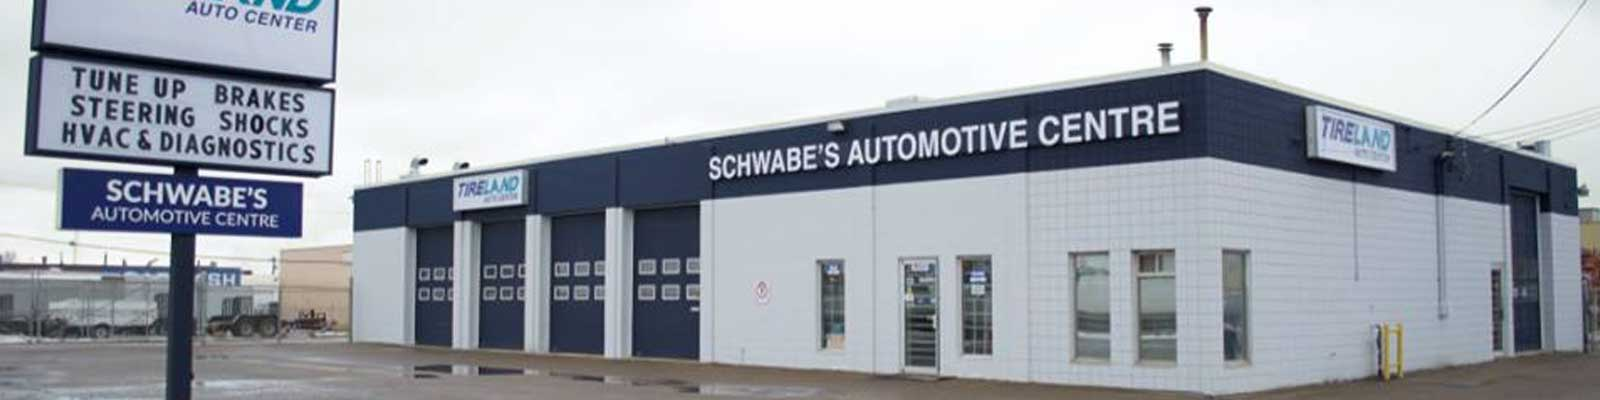 Auto Mechanic Shop in Edmonton  - Schwabe's Automotive Center